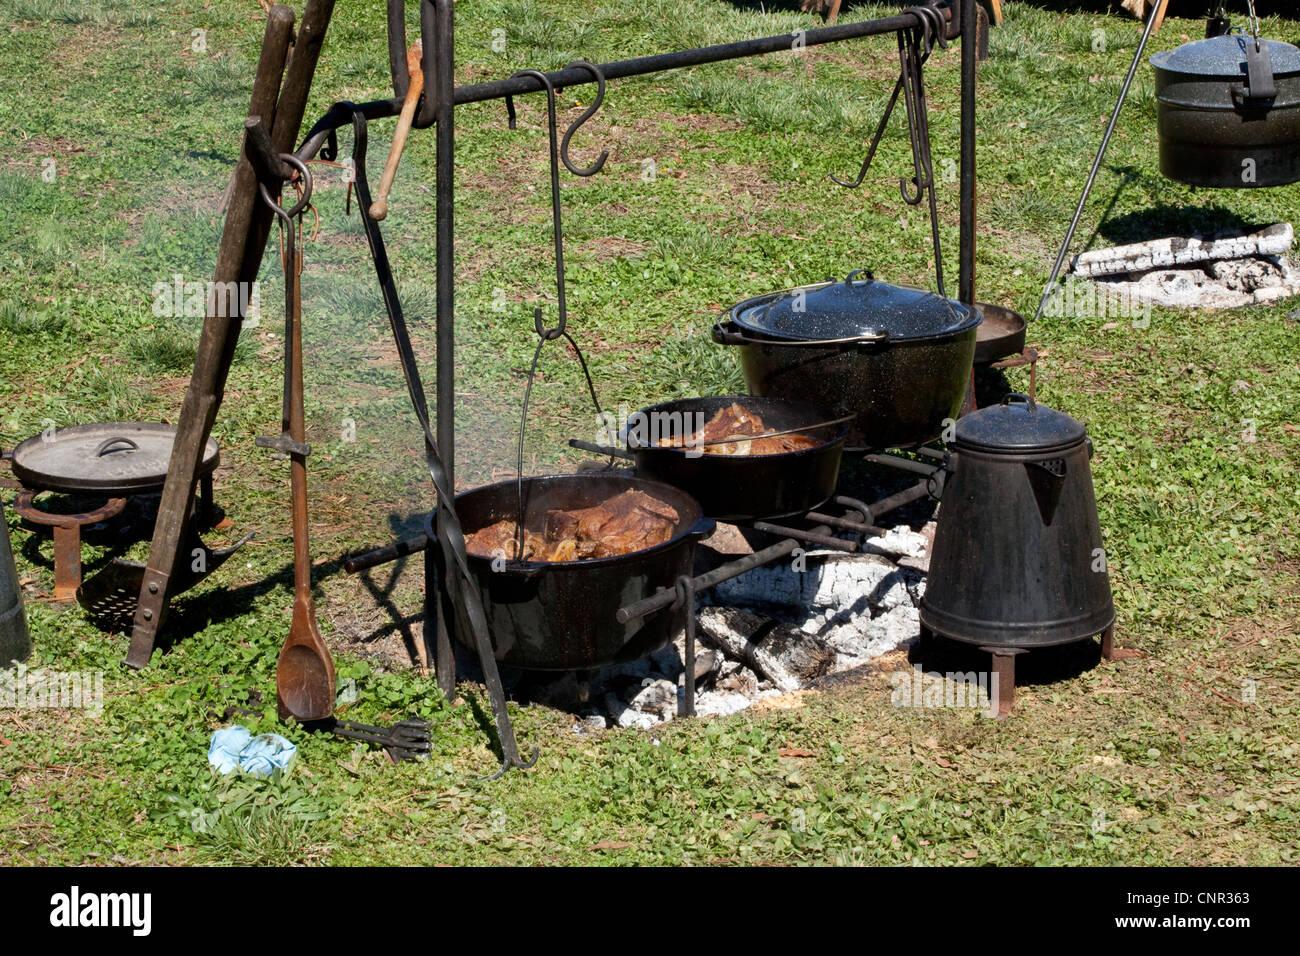 Cast Iron Pot Cooking Over A Camp Fire With Cast Iron Pots And Coffee